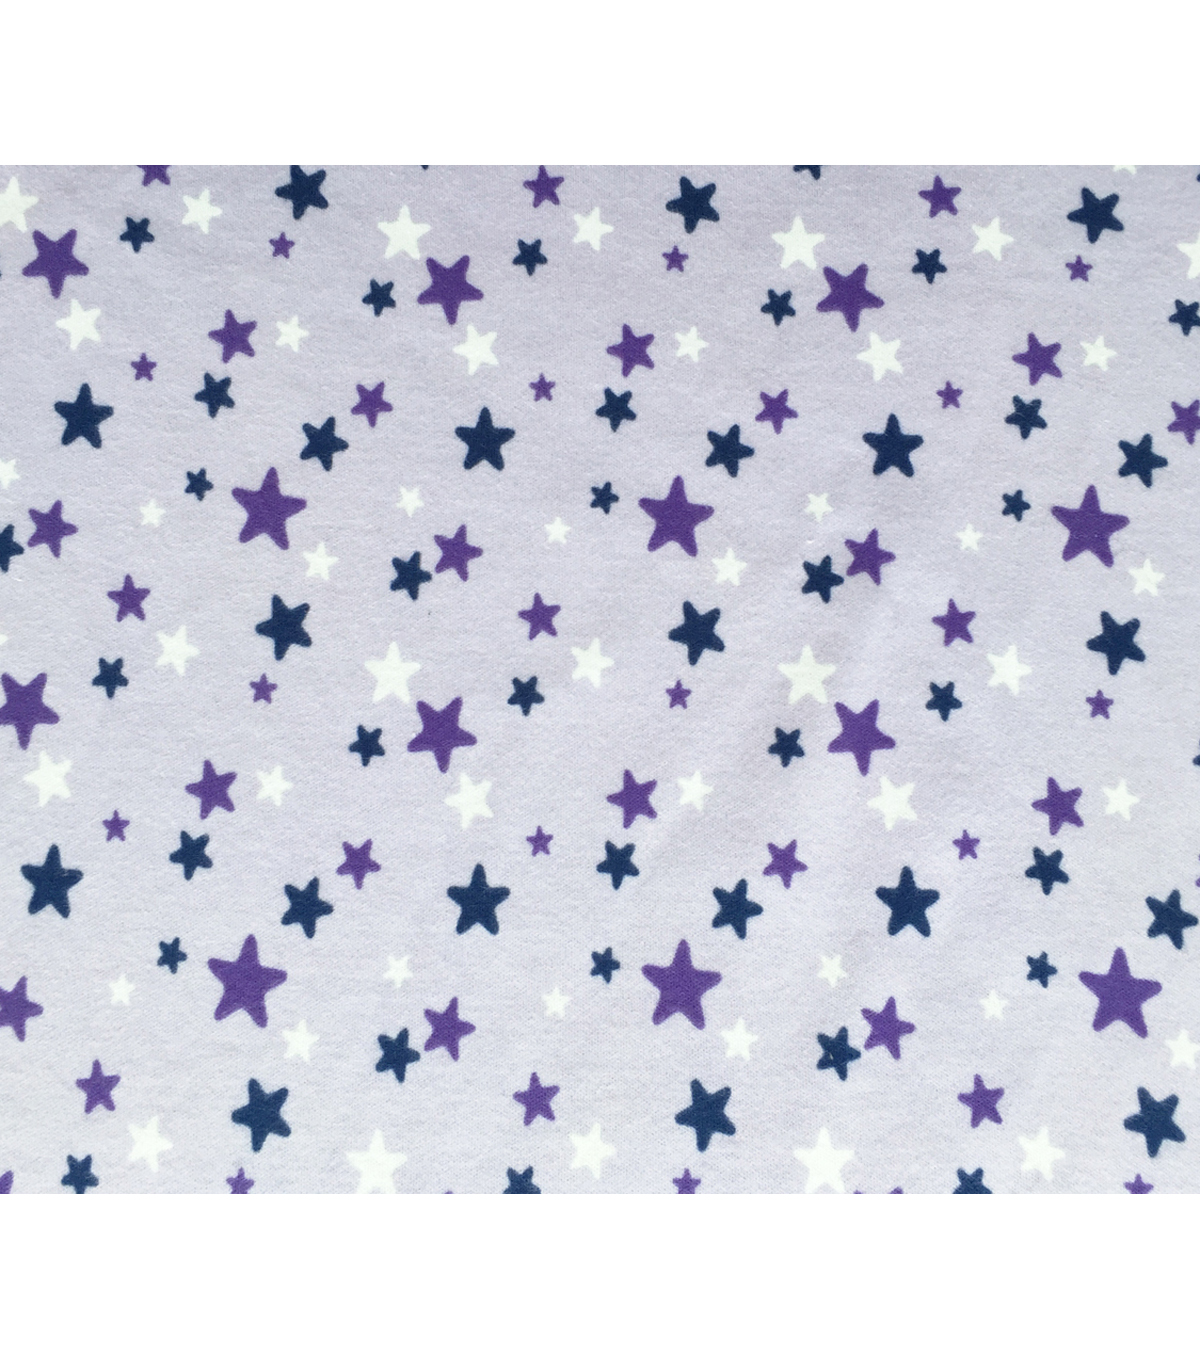 Doodles Juvenile Apparel Fabric-Purple Stars Interlock